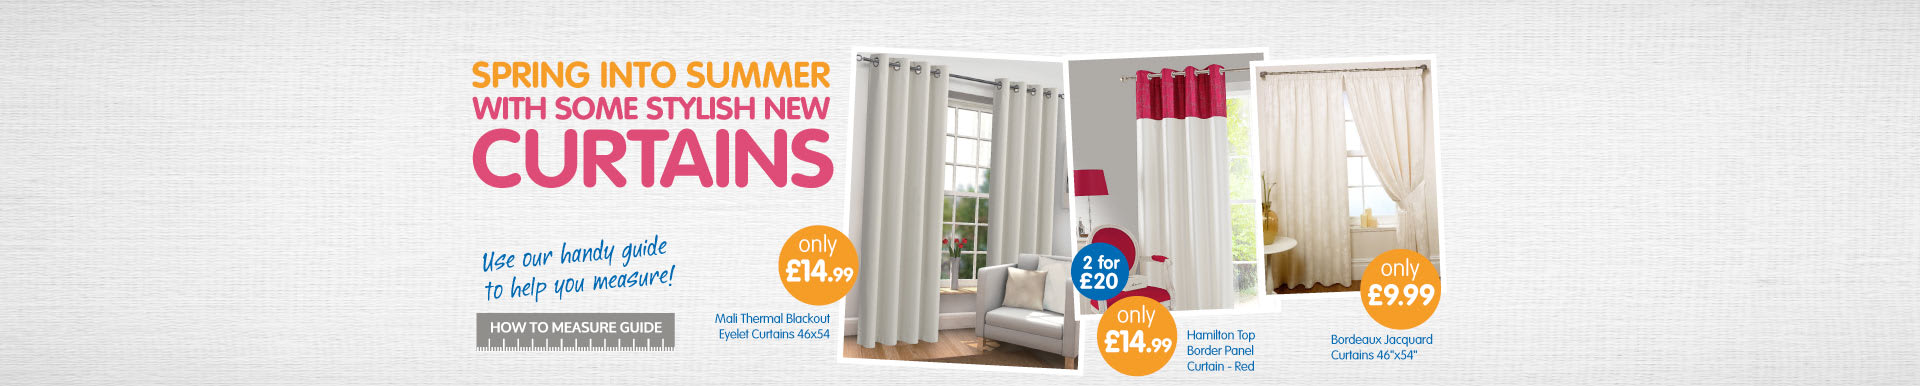 Spring into Summer with some new stylish curtains from B&M.